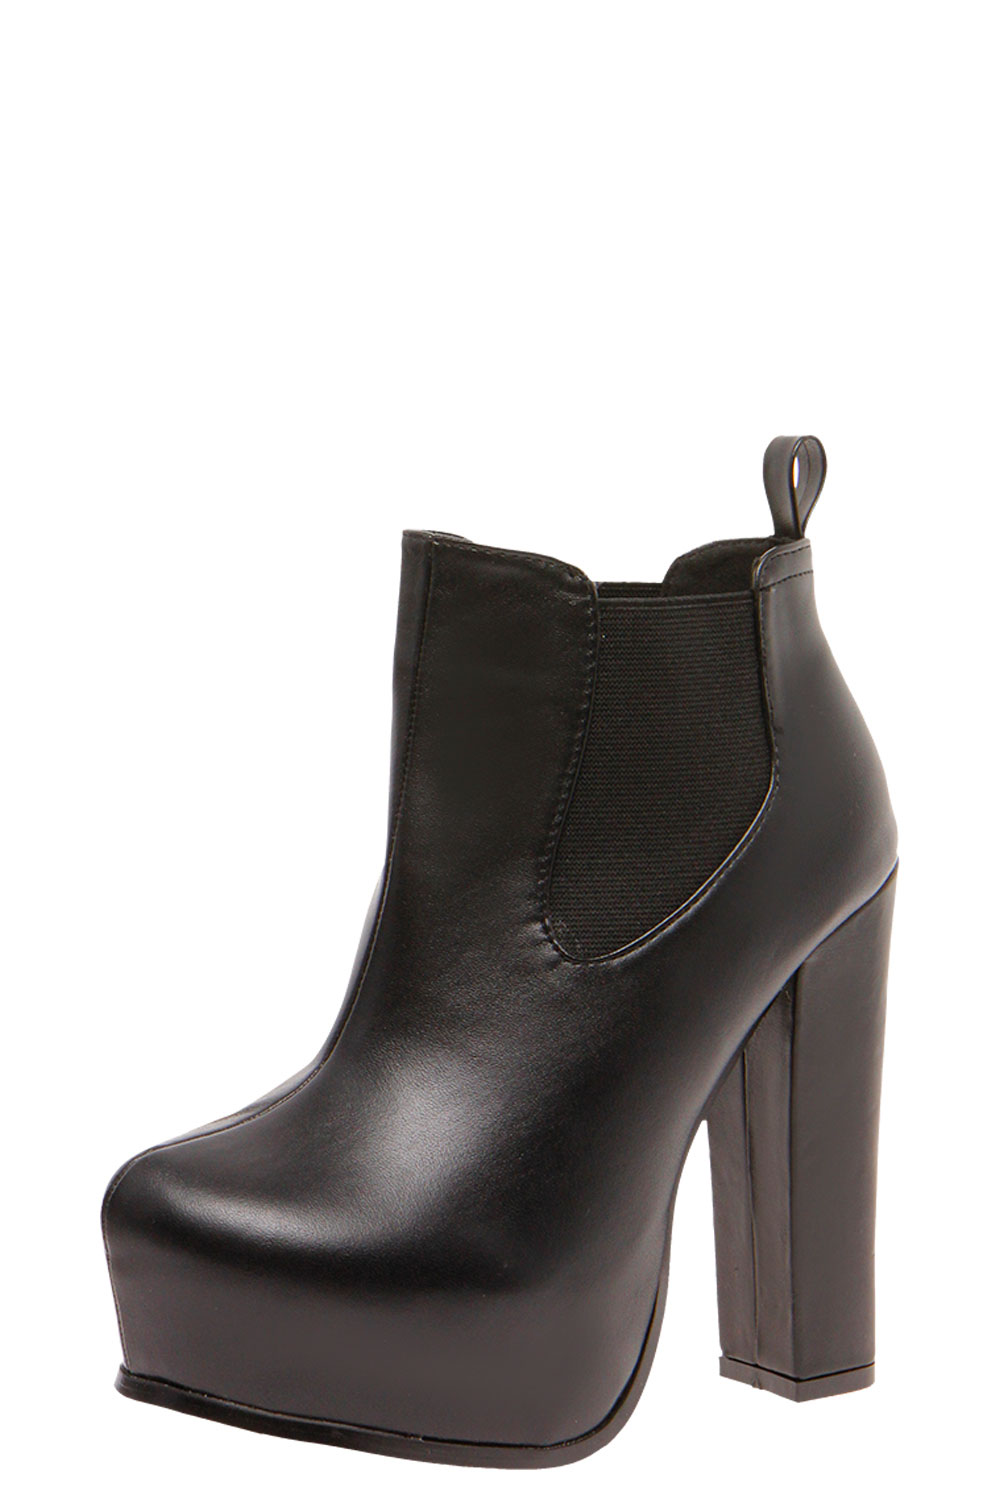 boohoo womens faiza black platform chelsea boot in